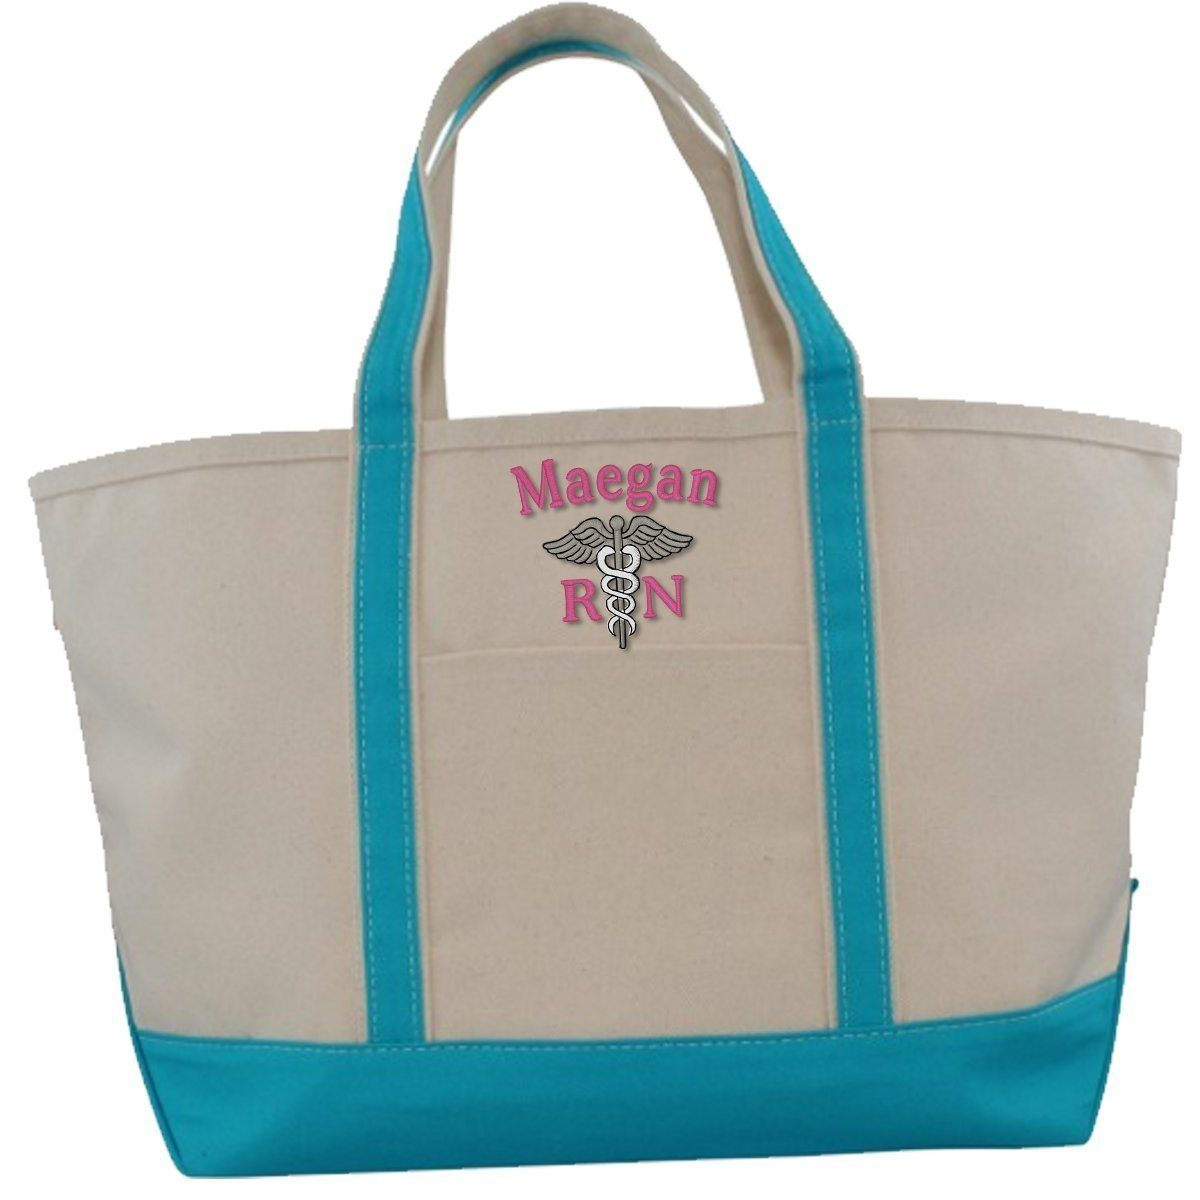 CB Station Bags Large Tote / Turquoise 5020 | Customized Boat Tote from CB Station